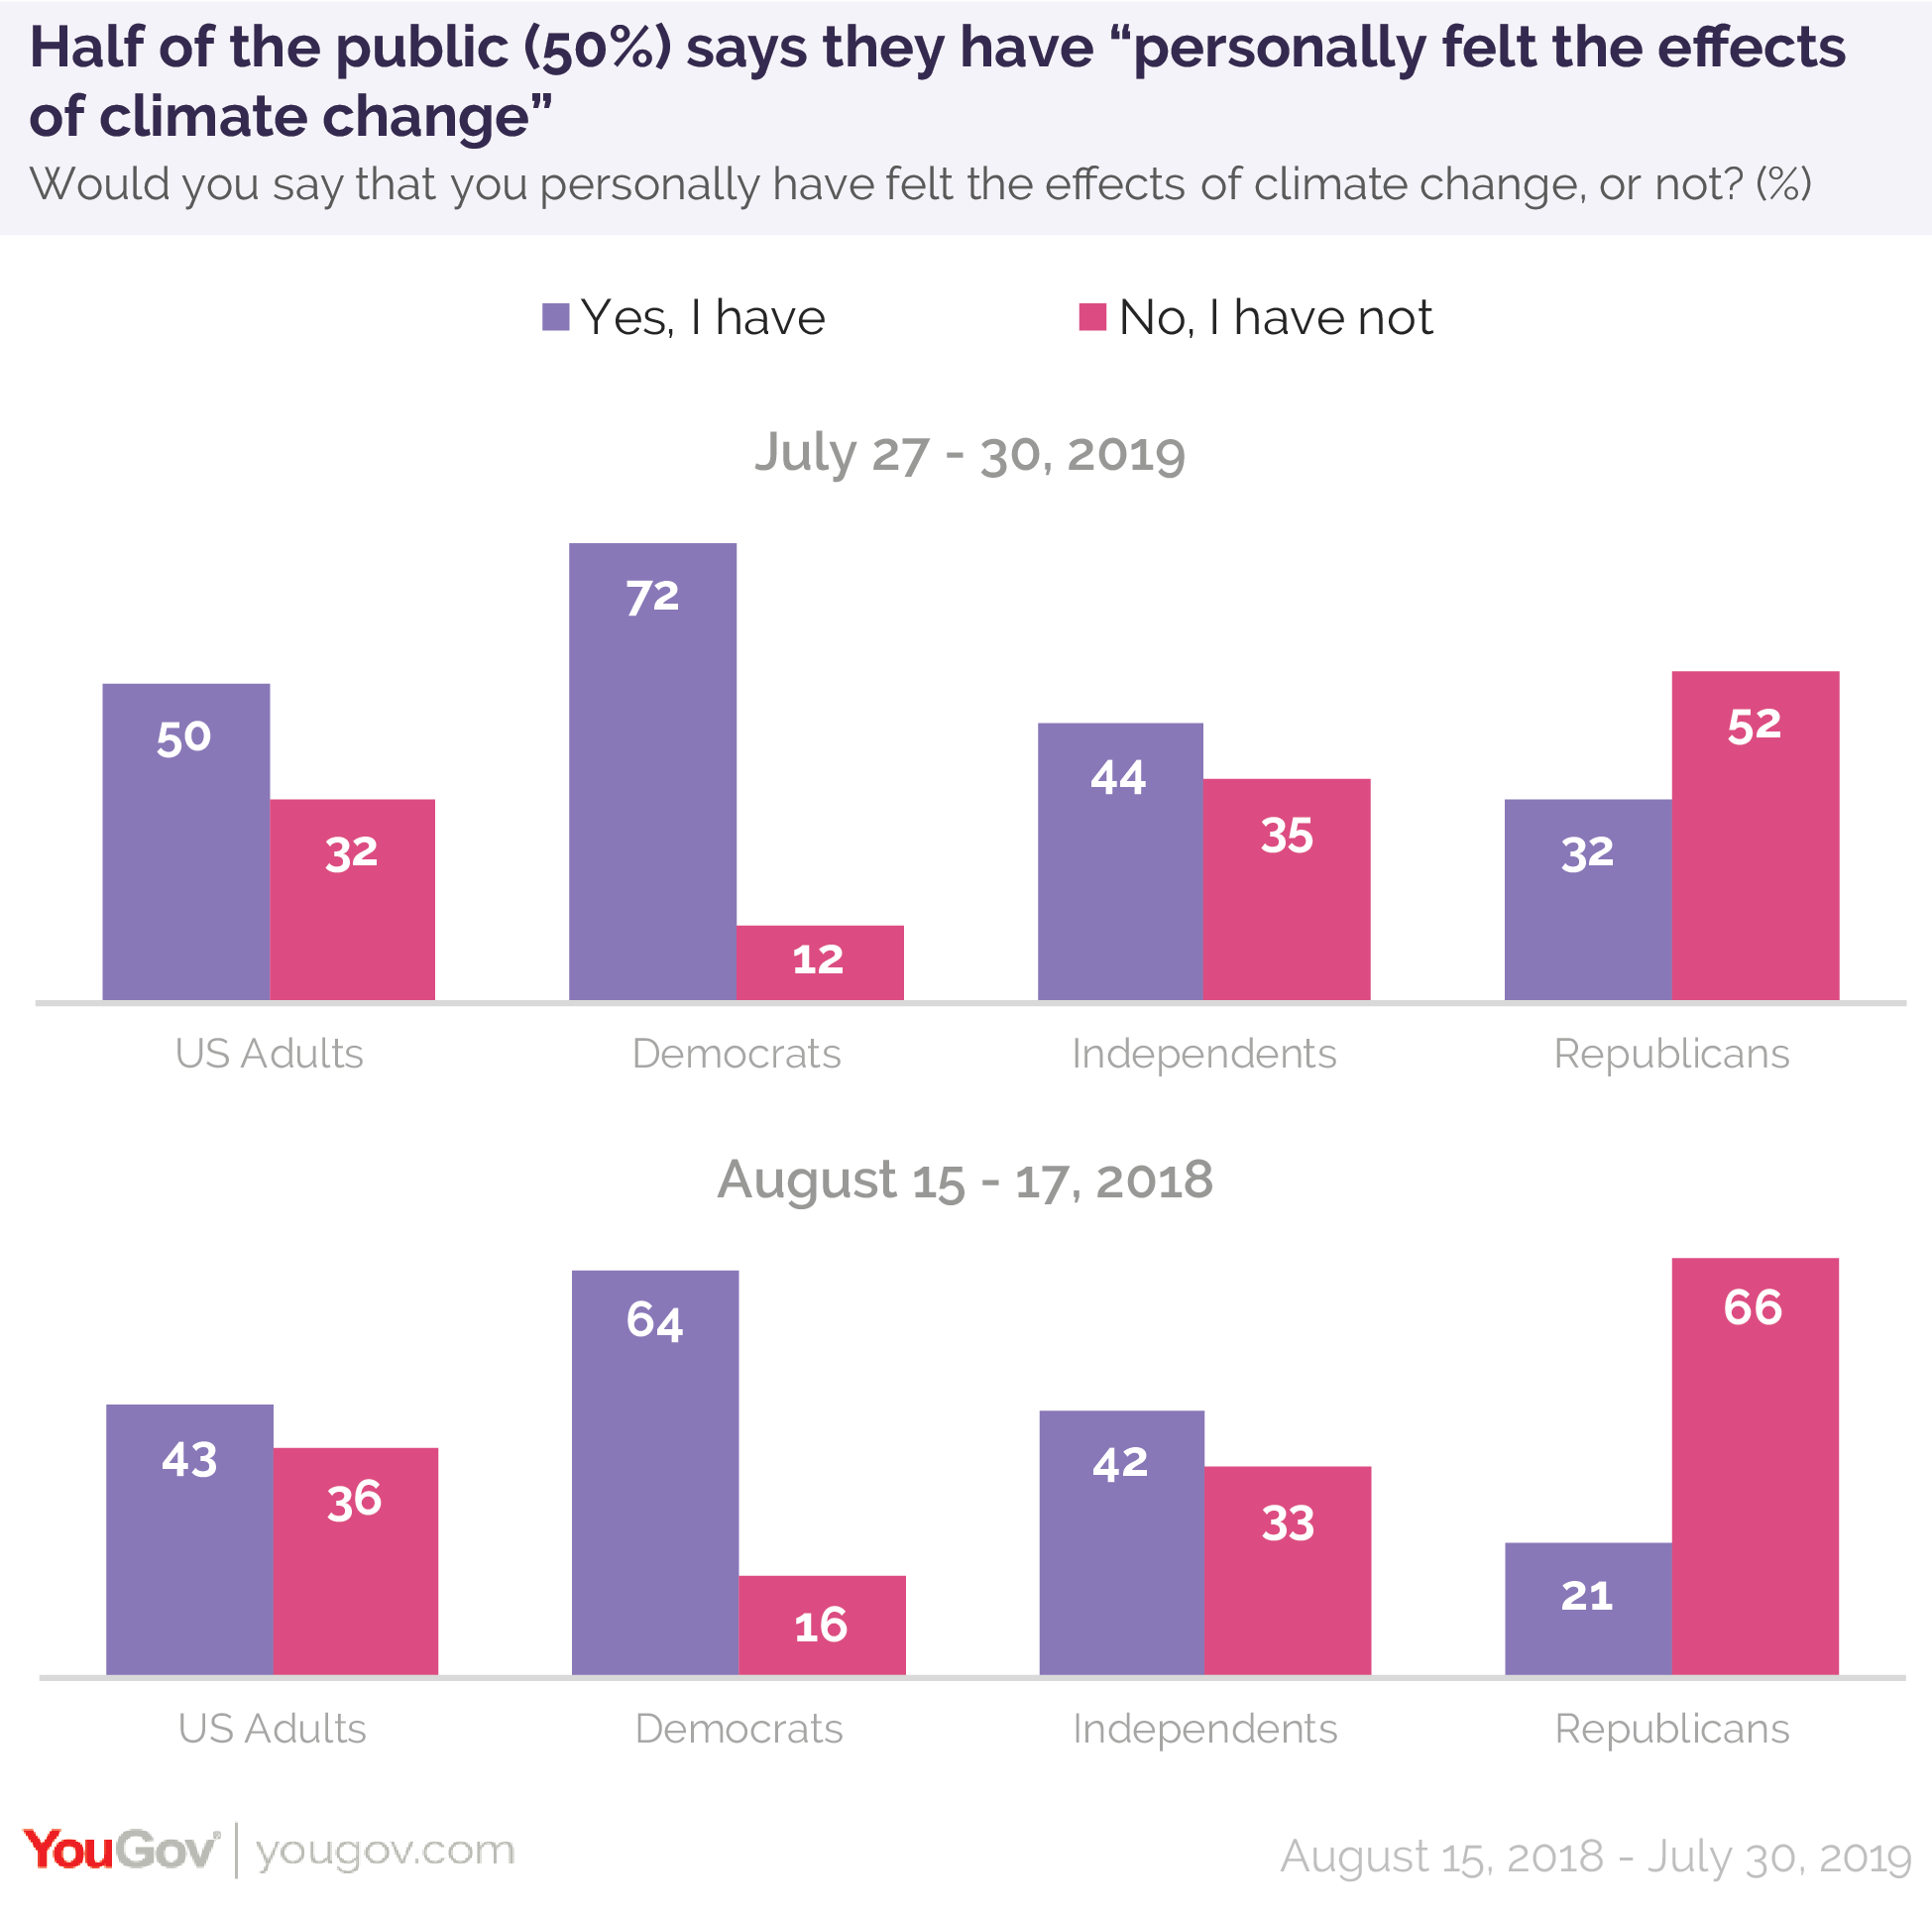 Half of the public says they have personally felt the effects of climate change